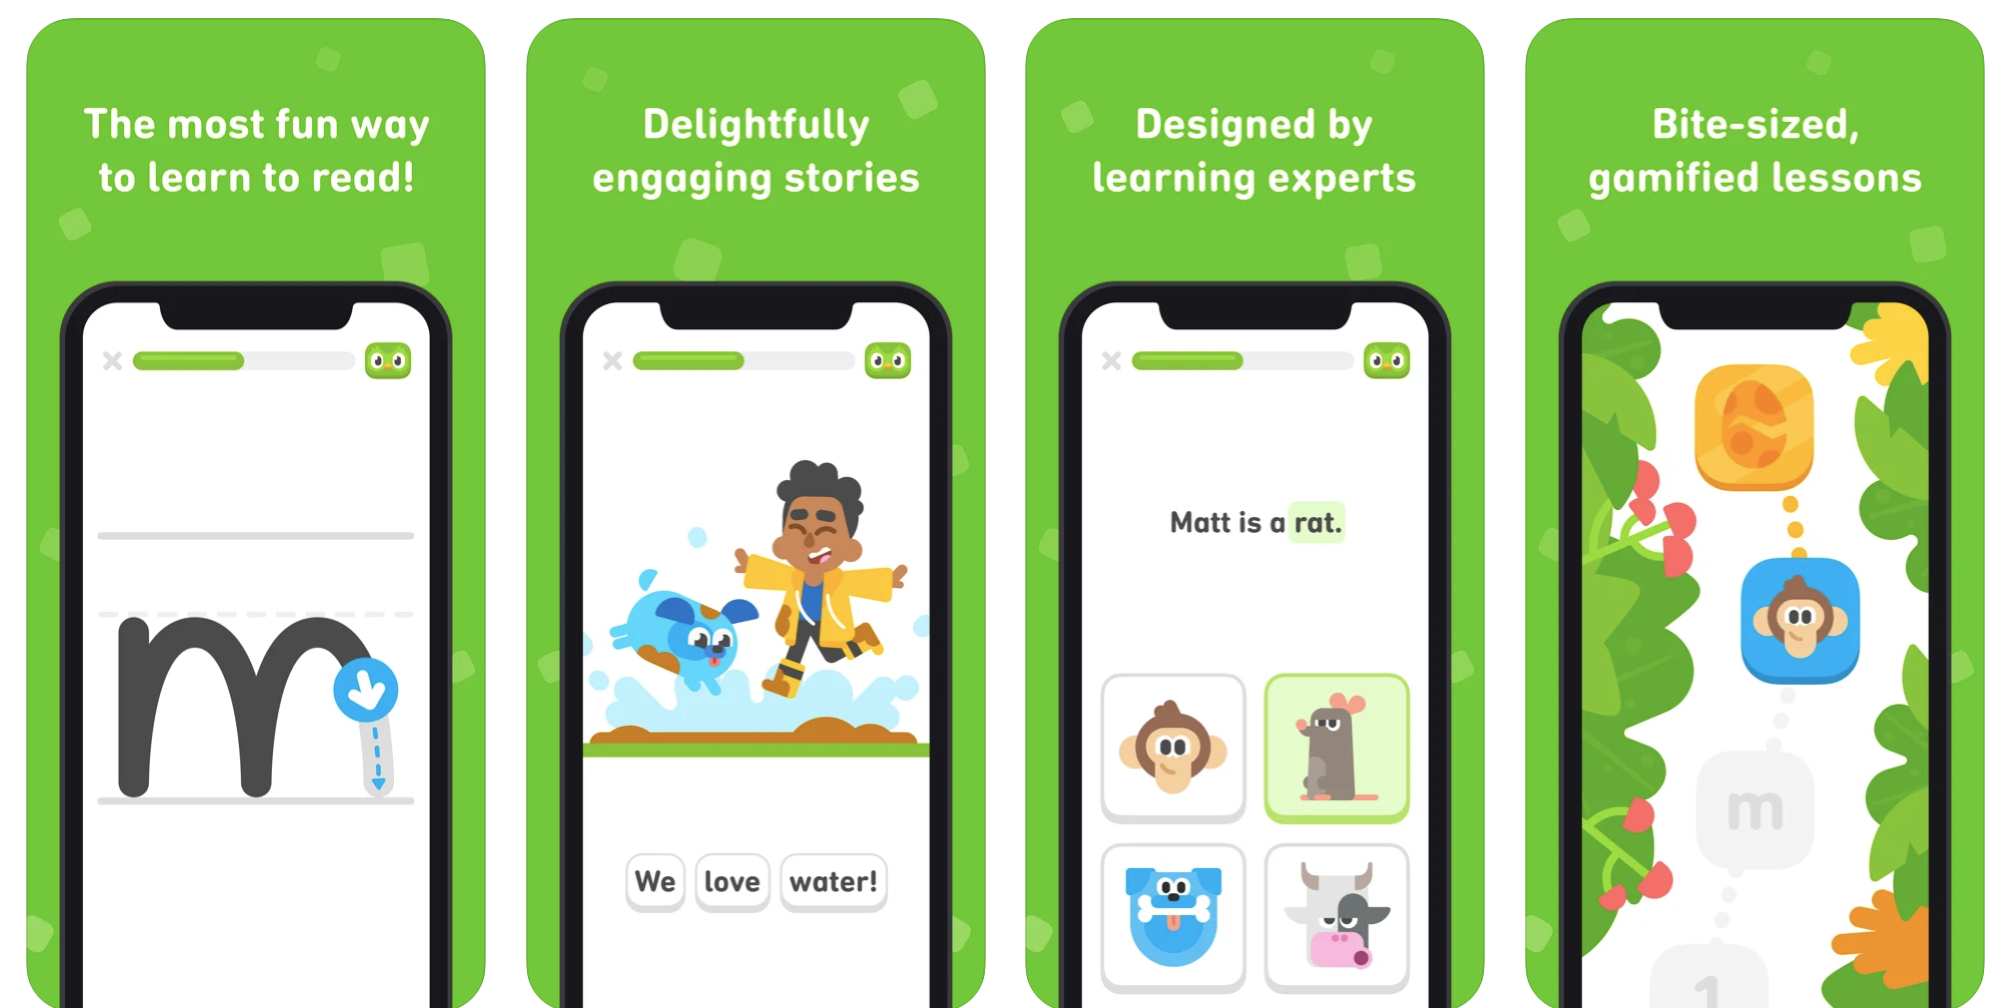 Best apps for young kids - Duolingo ABC